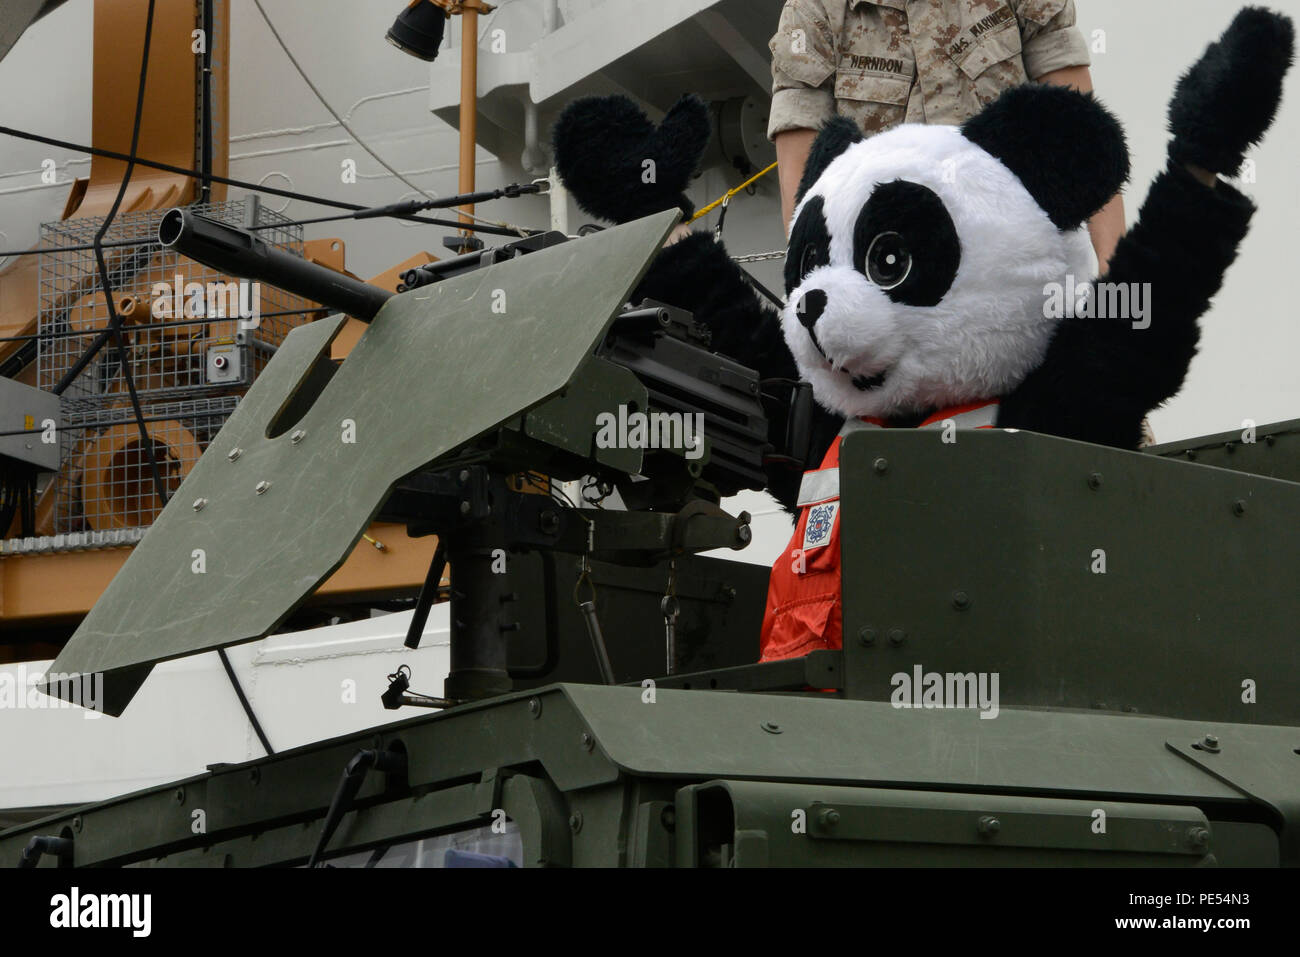 PFD Panda, the Coast Guard mascot used to bring attention to the use of personal flotation devices, pops out of the top of a High Mobility Multipurpose Wheeled Vehicle, supplied by members from the Marine Corps Security Forces Battalion from Naval Base Kitsap-Bangor, during a Seattle Seahawks change-of-command ceremony at Coast Guard Base Seattle, Oct. 13, 2015. During the ceremony, various vehicles, boats and cutters were on display and available for tours to attendees who were representing the Coast Guard 13th District, MCSF Battalion Bangor, Seahawks, Sea Gals and USAA. (U.S. Coast Guard ph - Stock Image